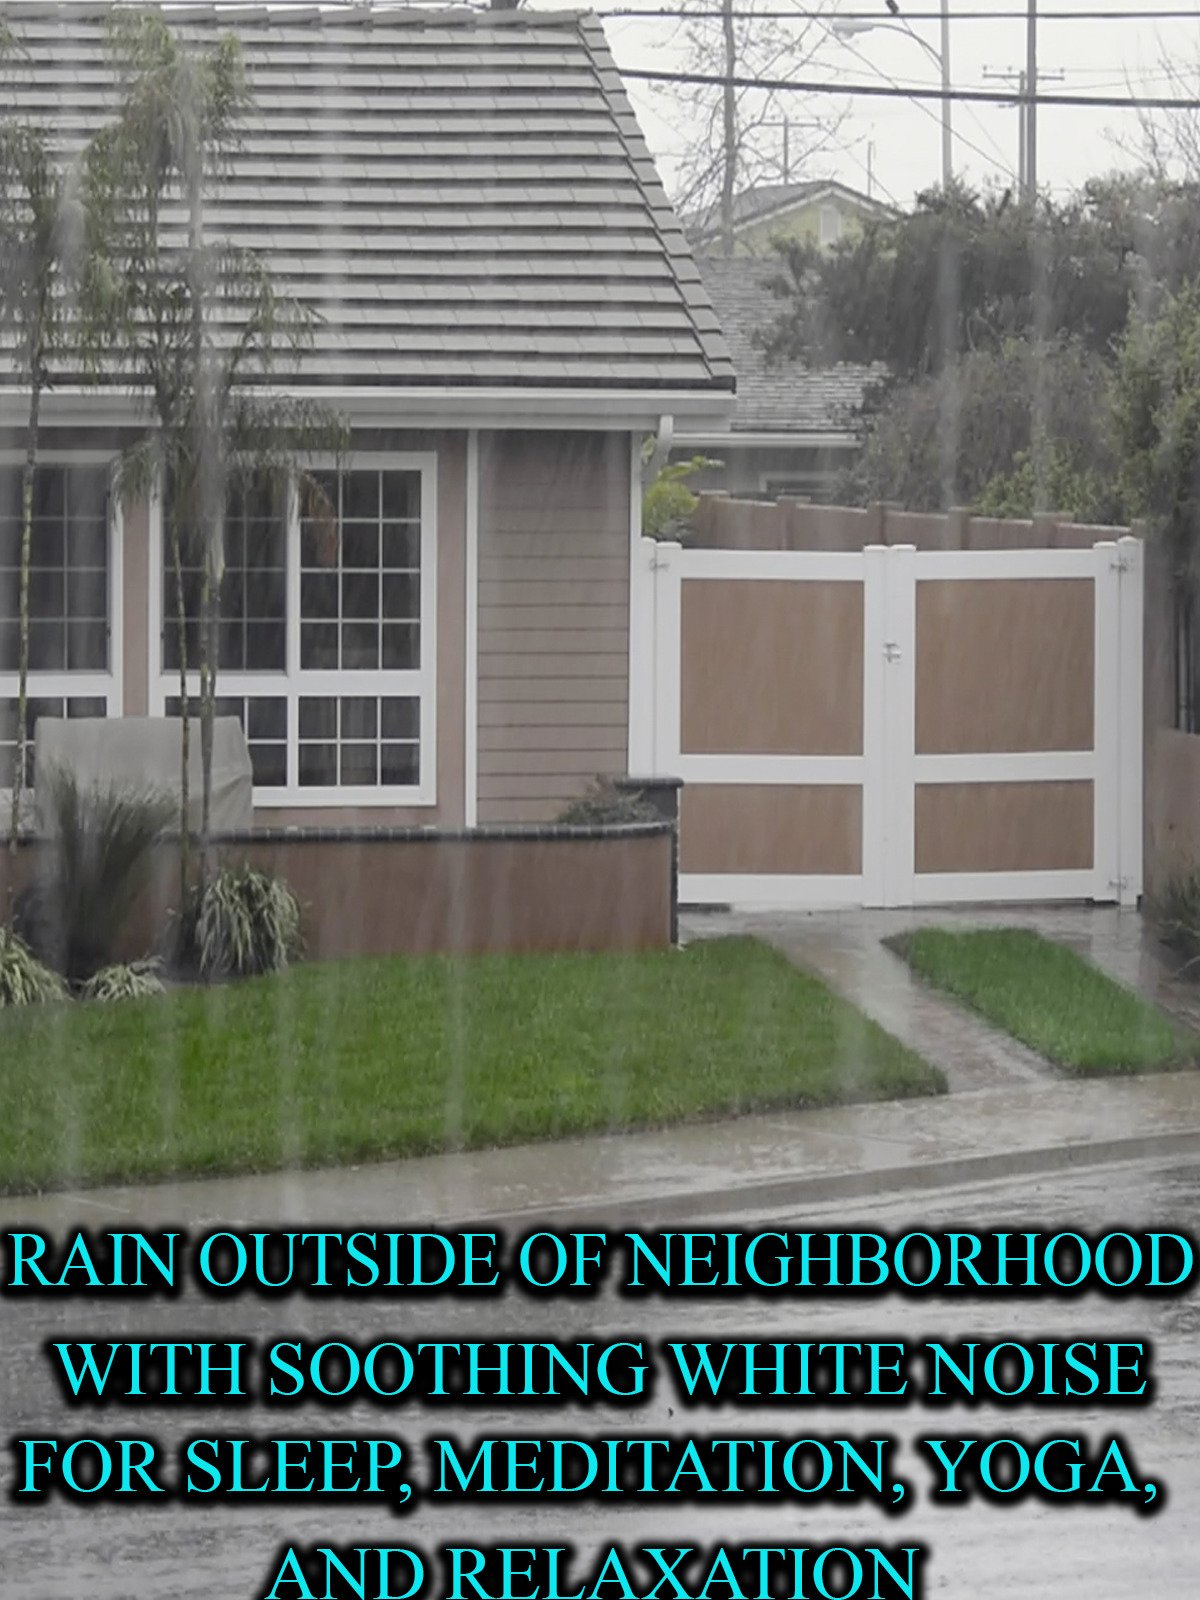 Rain Outside of Neighborhood with Soothing White Noise For Sleep, Meditation, Yoga, and Relaxation